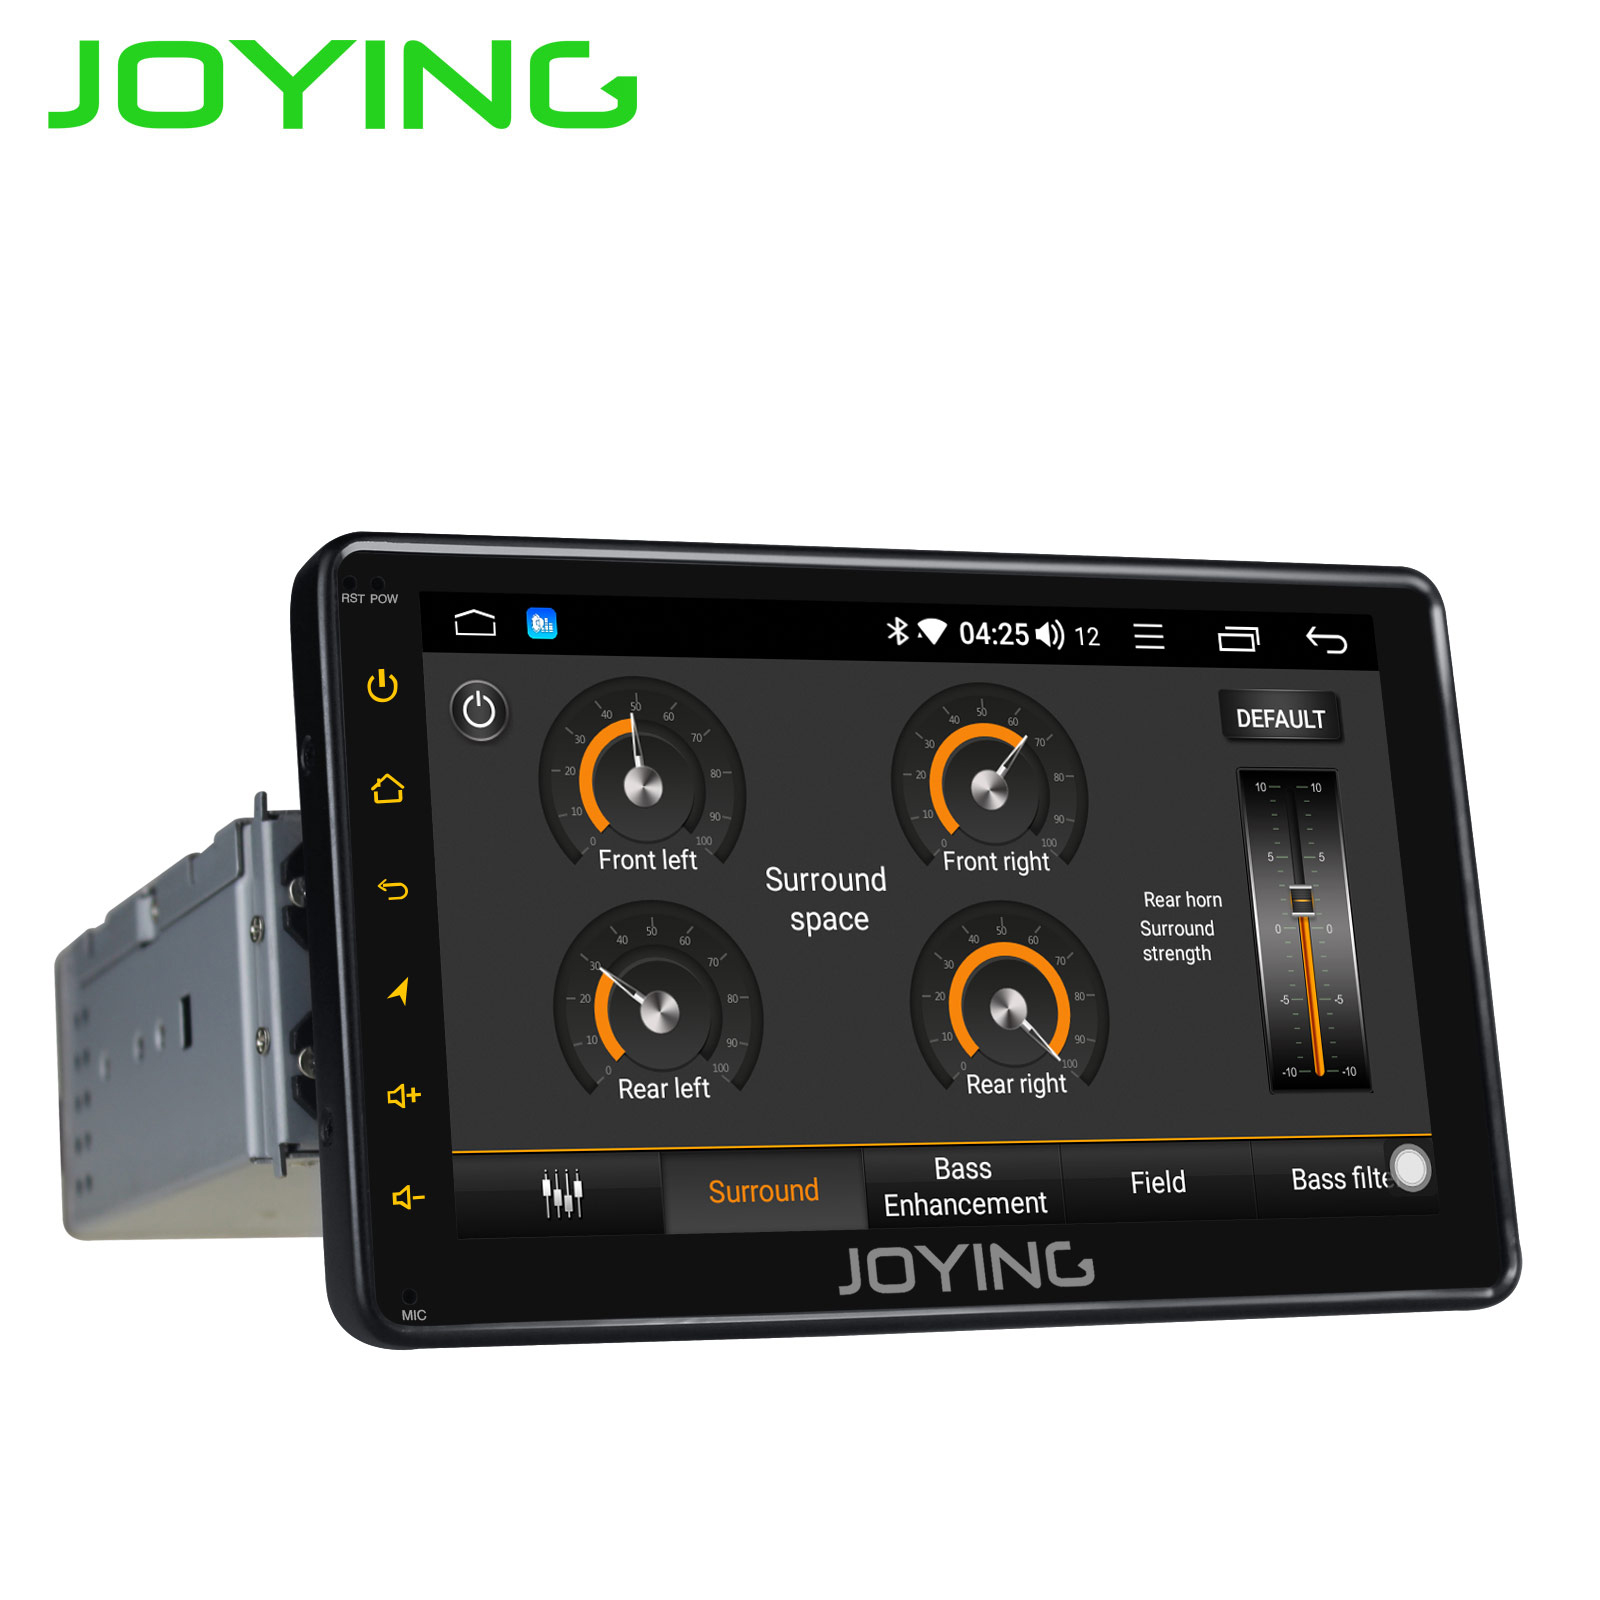 "Clearance JOYING 7"" Android 8.1 1 din Car Radio 2GB+32GB Octa Core GPS DSP universal head unit stereo autoradio SWC Fast Boot Mirror link 3"